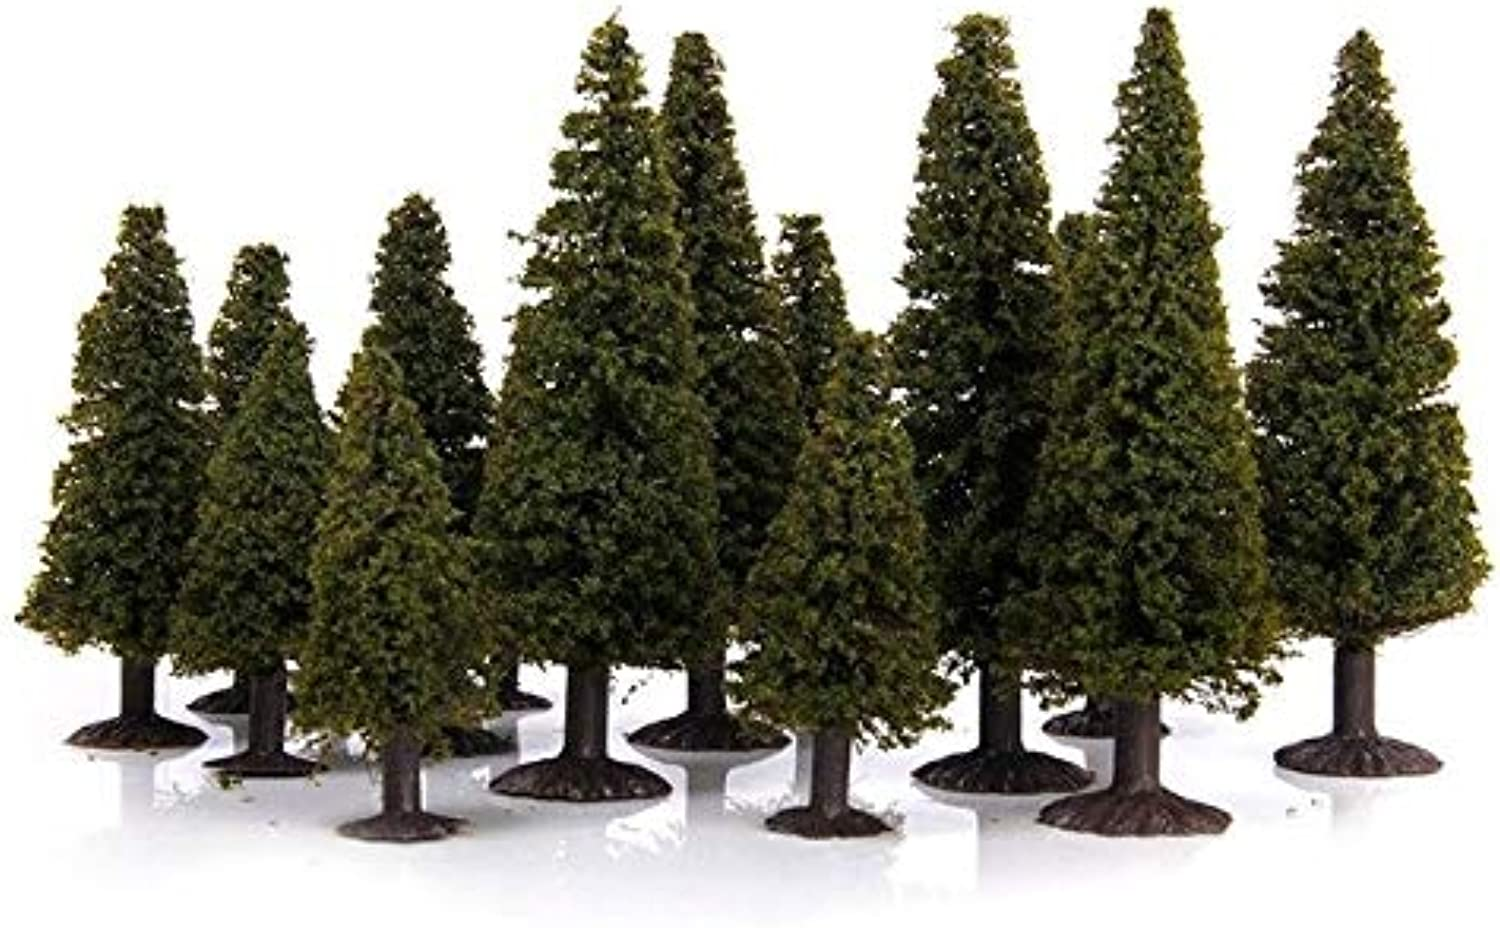 HOT 15 pcs Green Scenery Landscape Model Cedar Trees with PV Box 1 100 1 150 1 200   Green